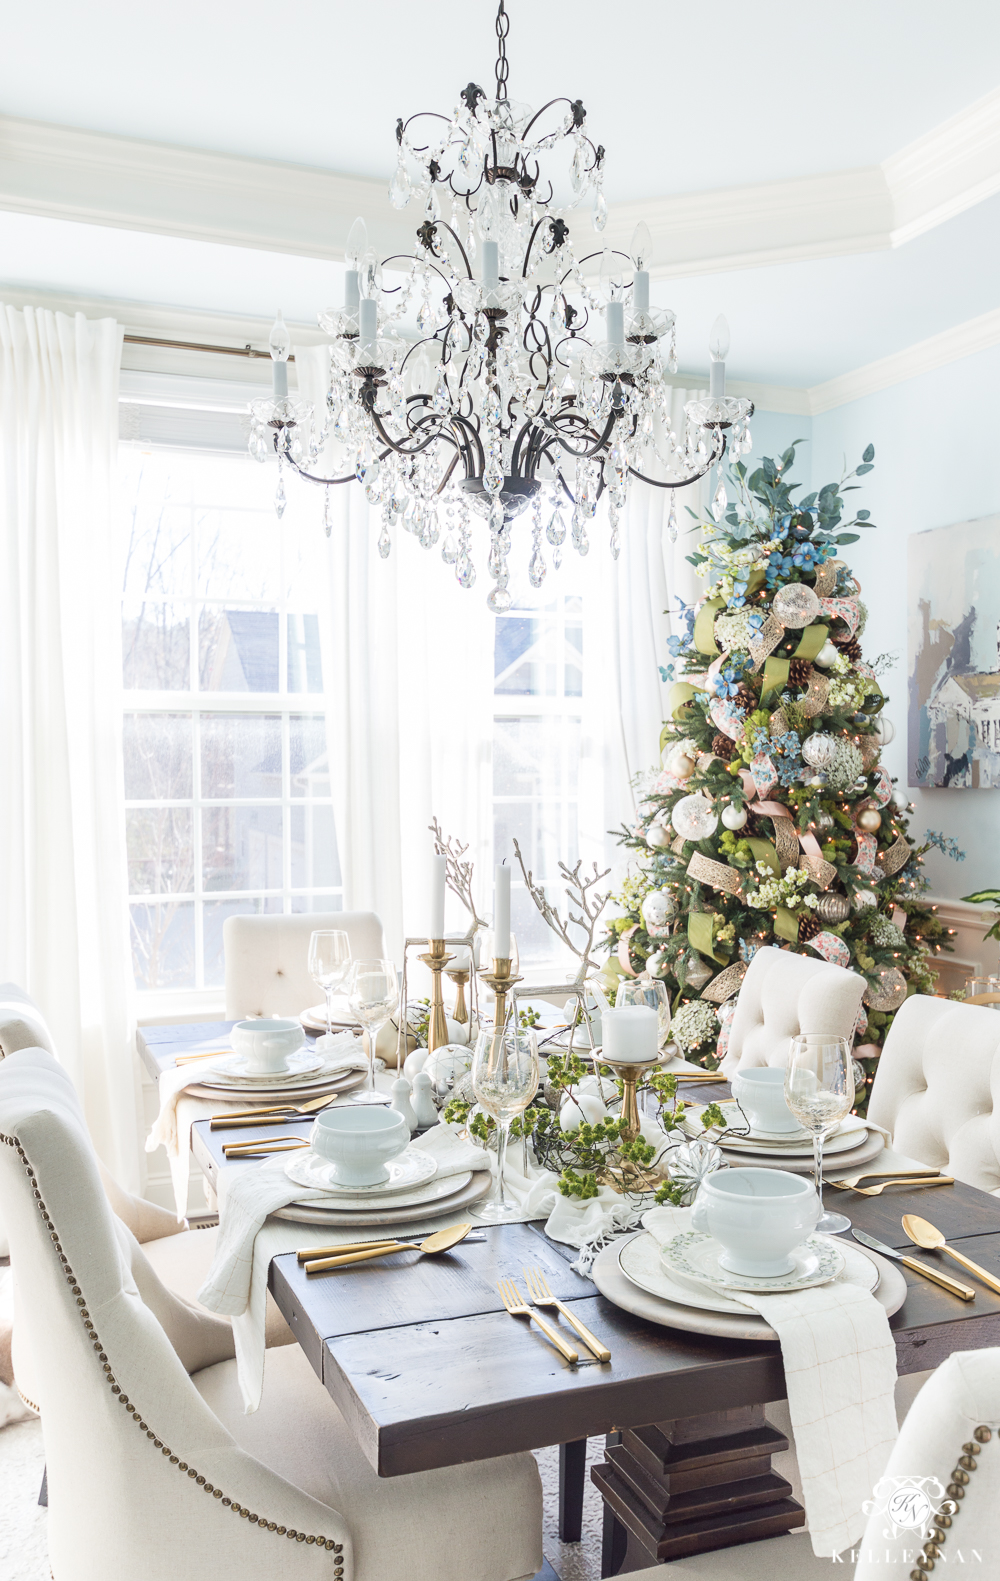 Dining room with Christmas tree in the corner